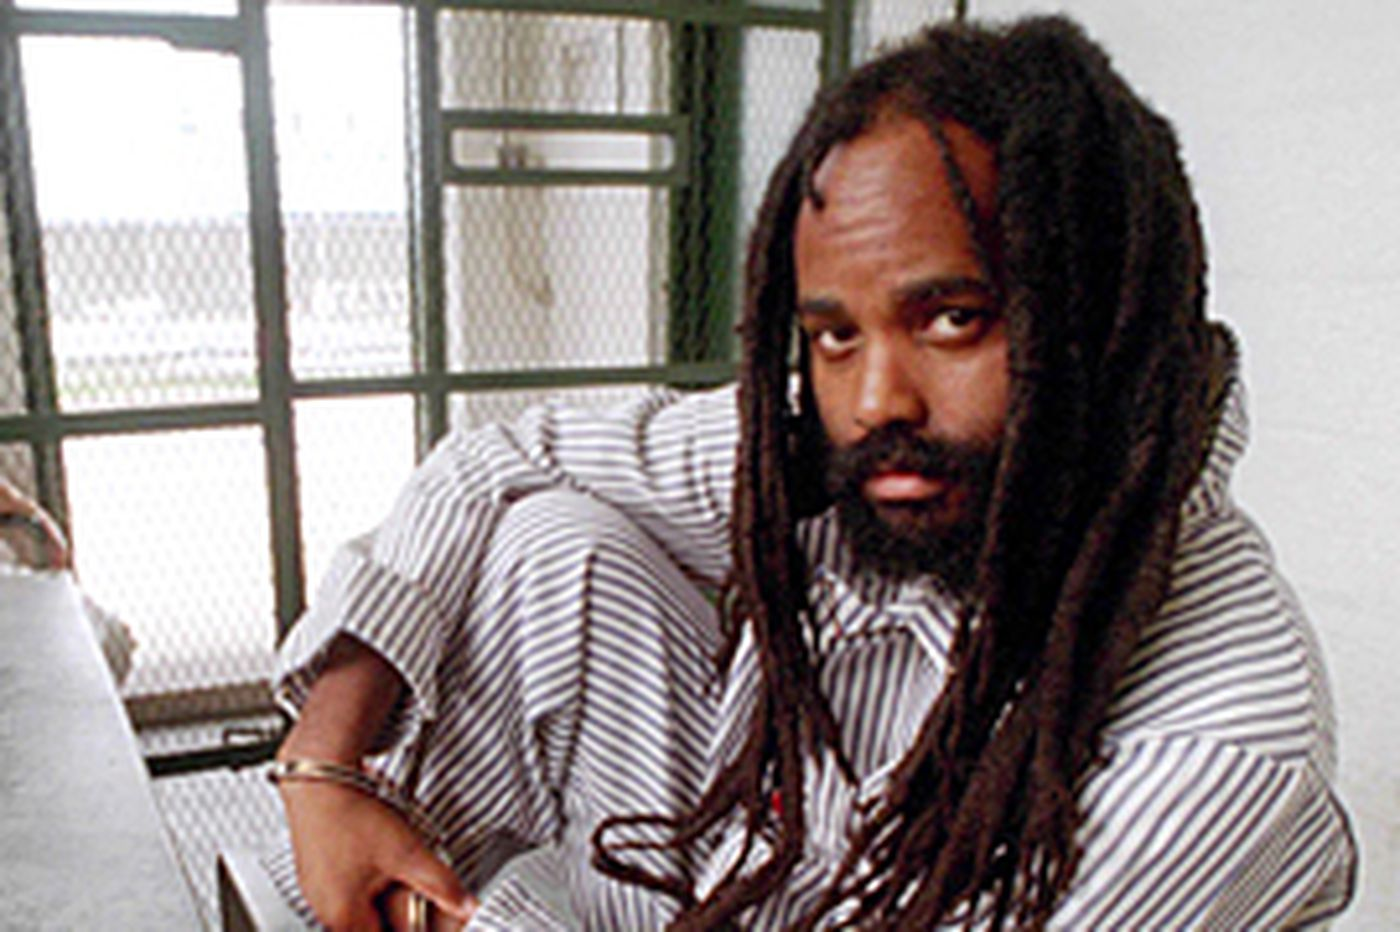 No death for Mumia Abu-Jamal - at least for now